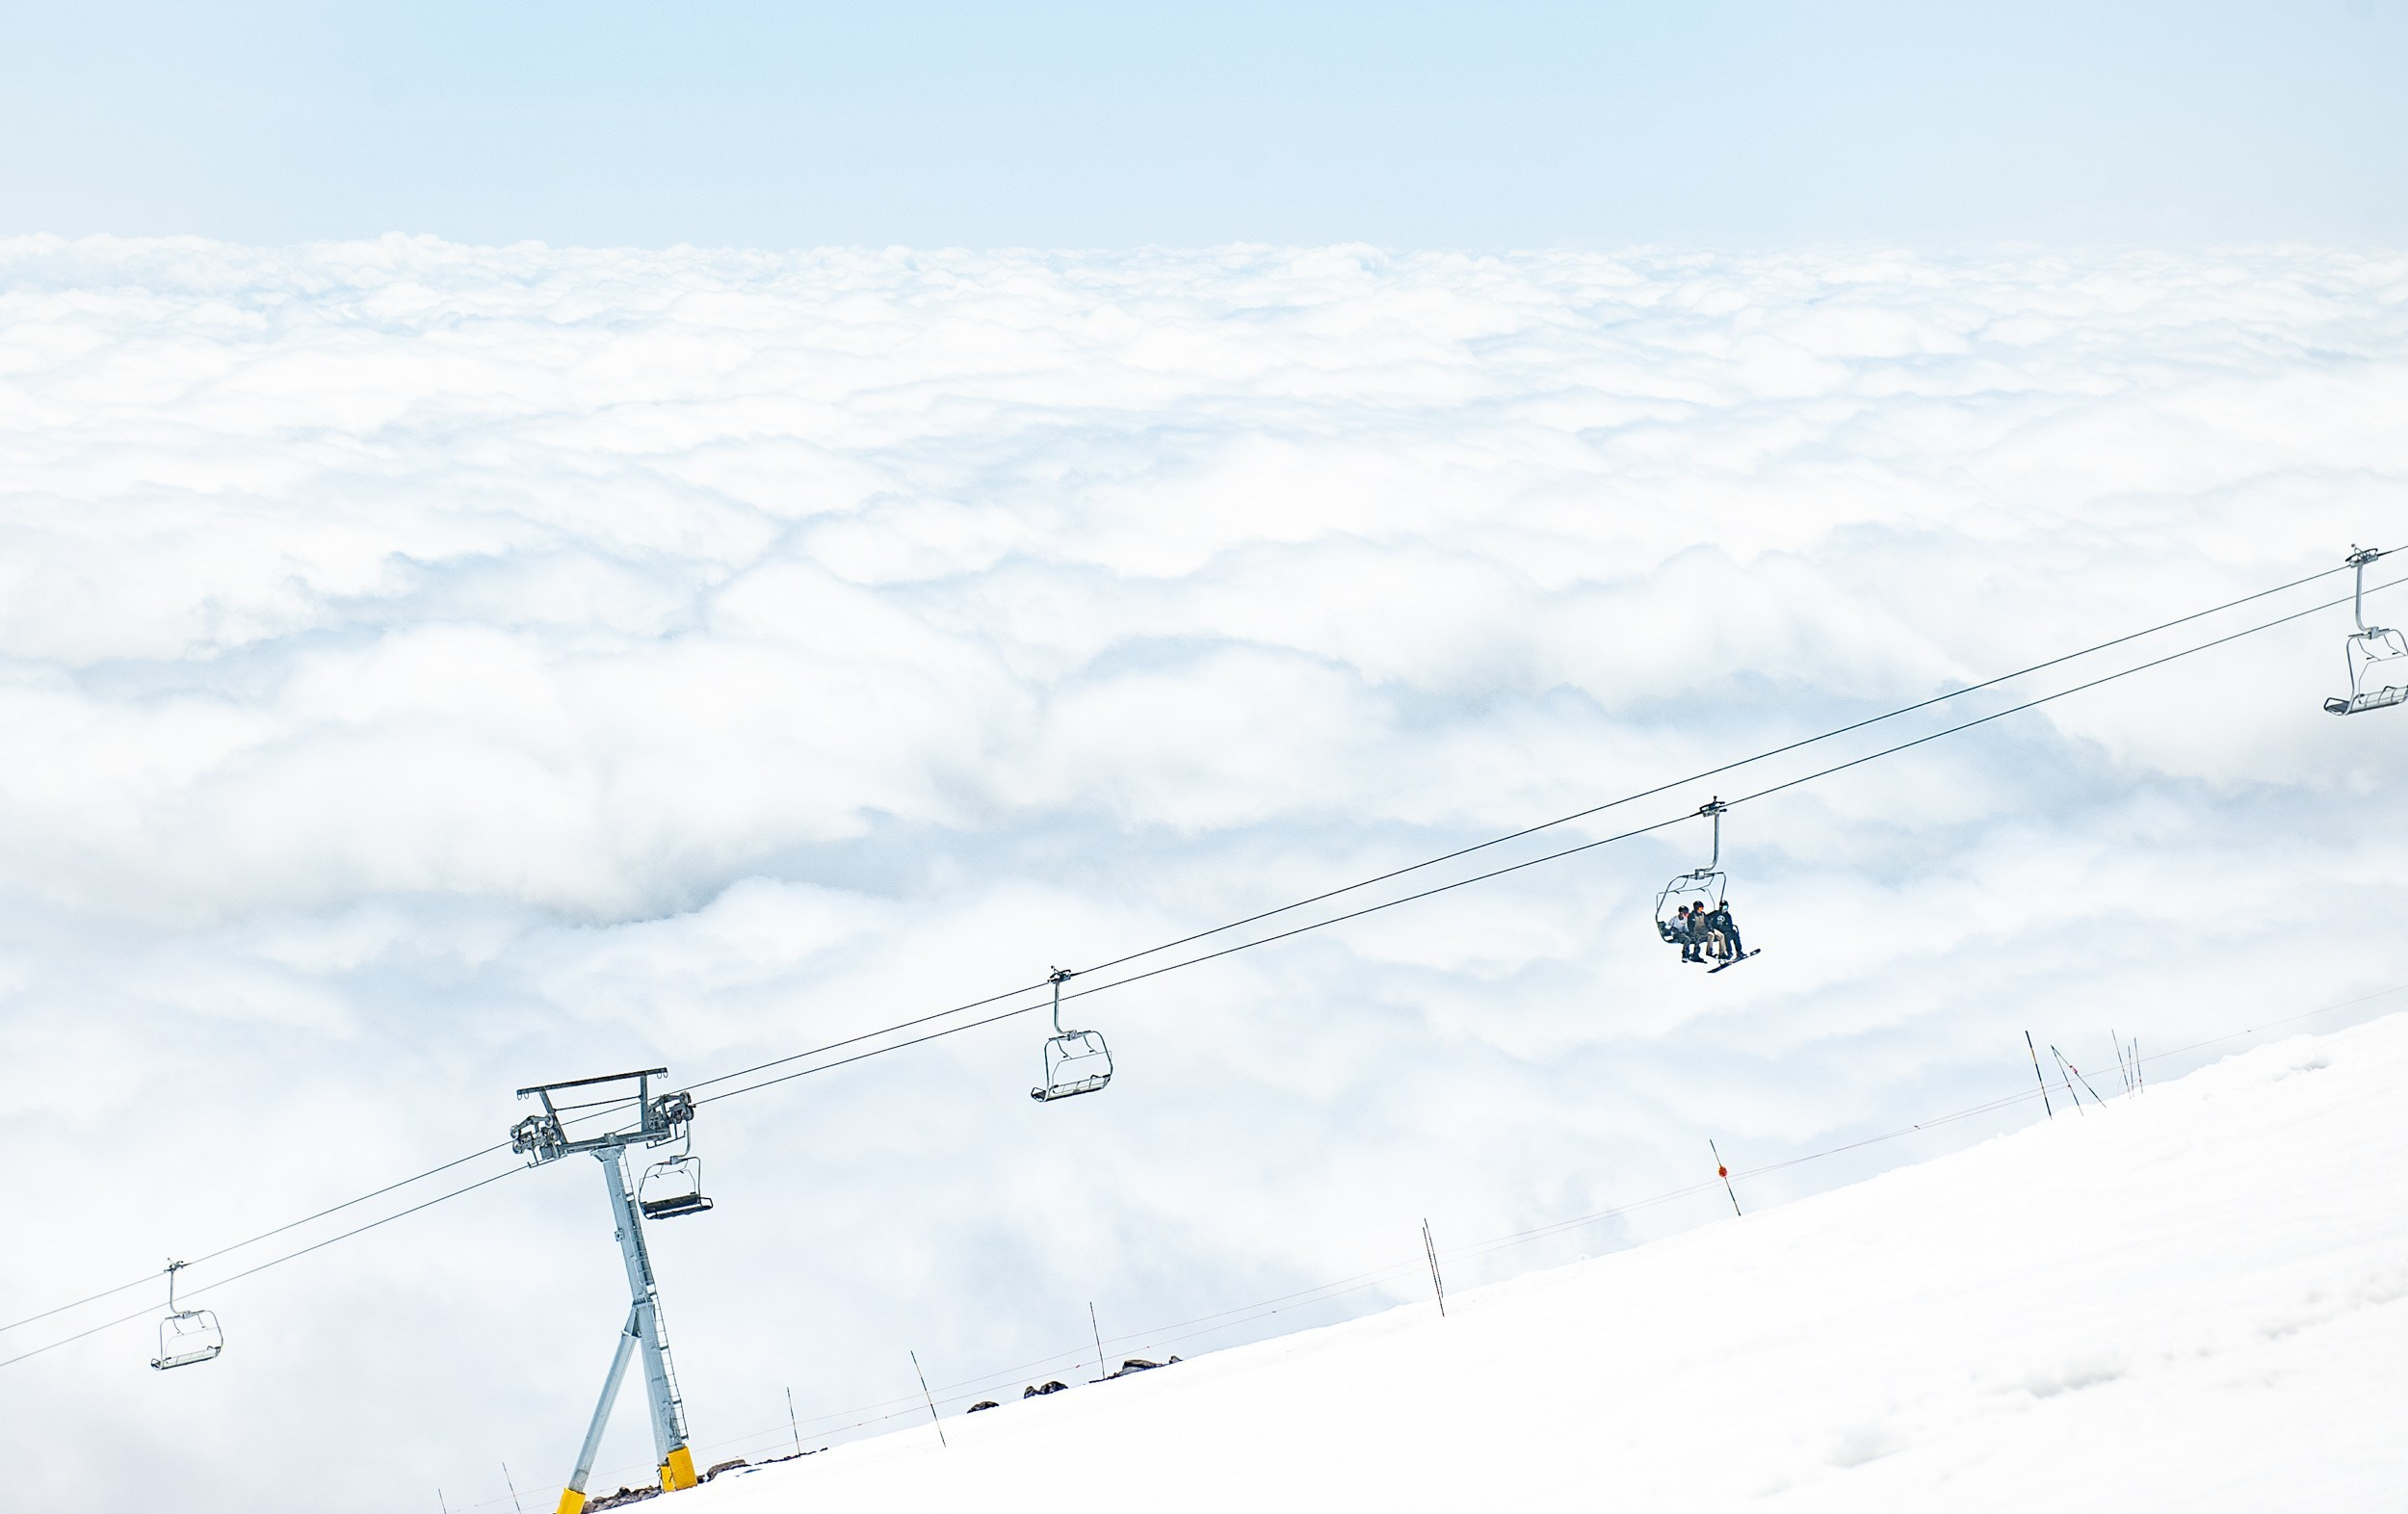 This Is the Story of the First Chairlift